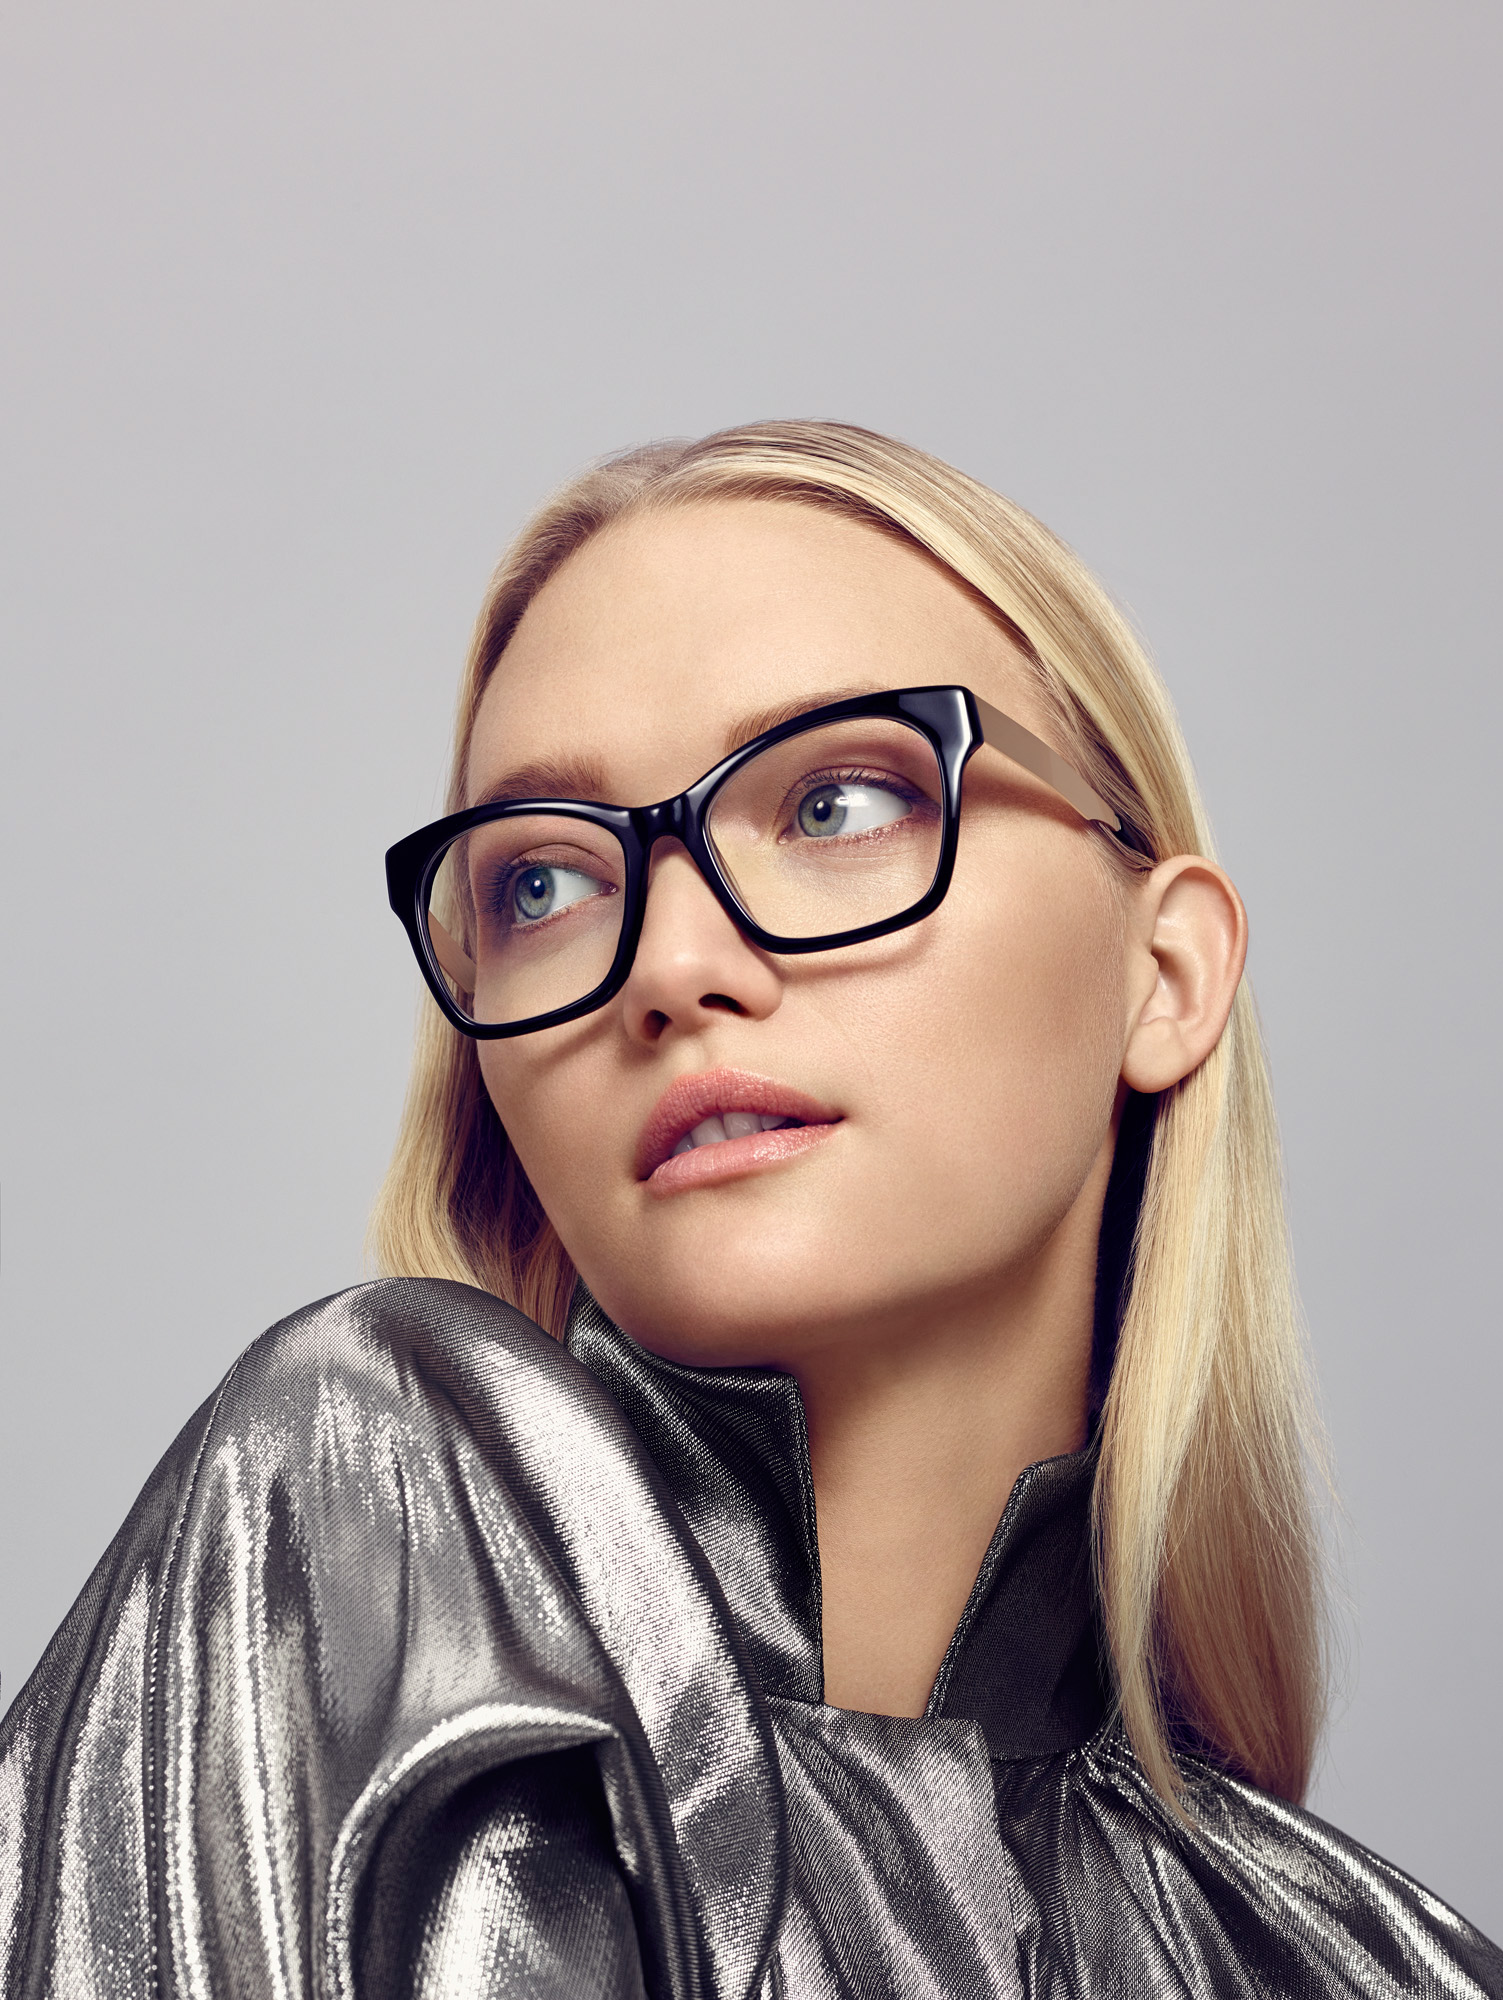 Gemma wears ELLERY 02 BLK glasses SKU 30474642 RRP 2 pairs from $299